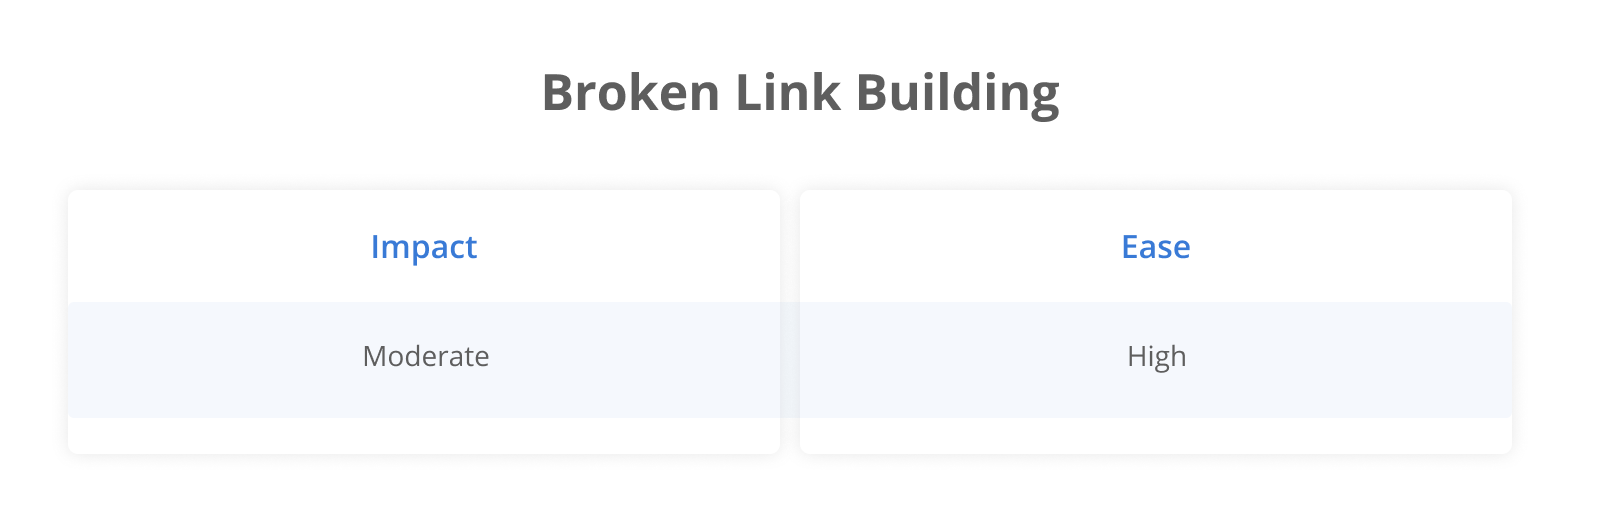 Broken Link Building: Impact Moderate; Ease High